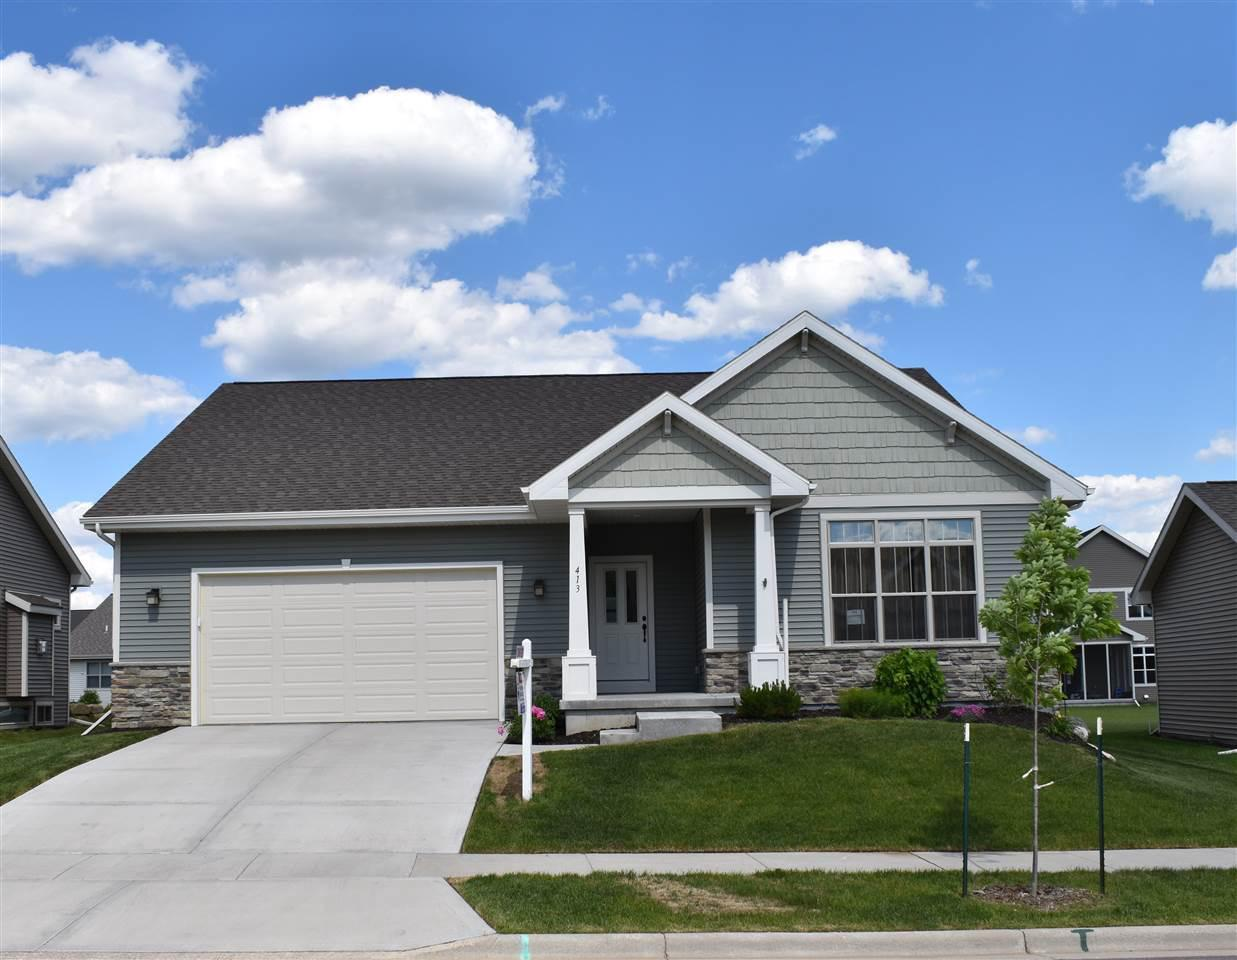 Homes For Sale Middleton Wi >> Local Real Estate Homes For Sale Middleton Wi Coldwell Banker